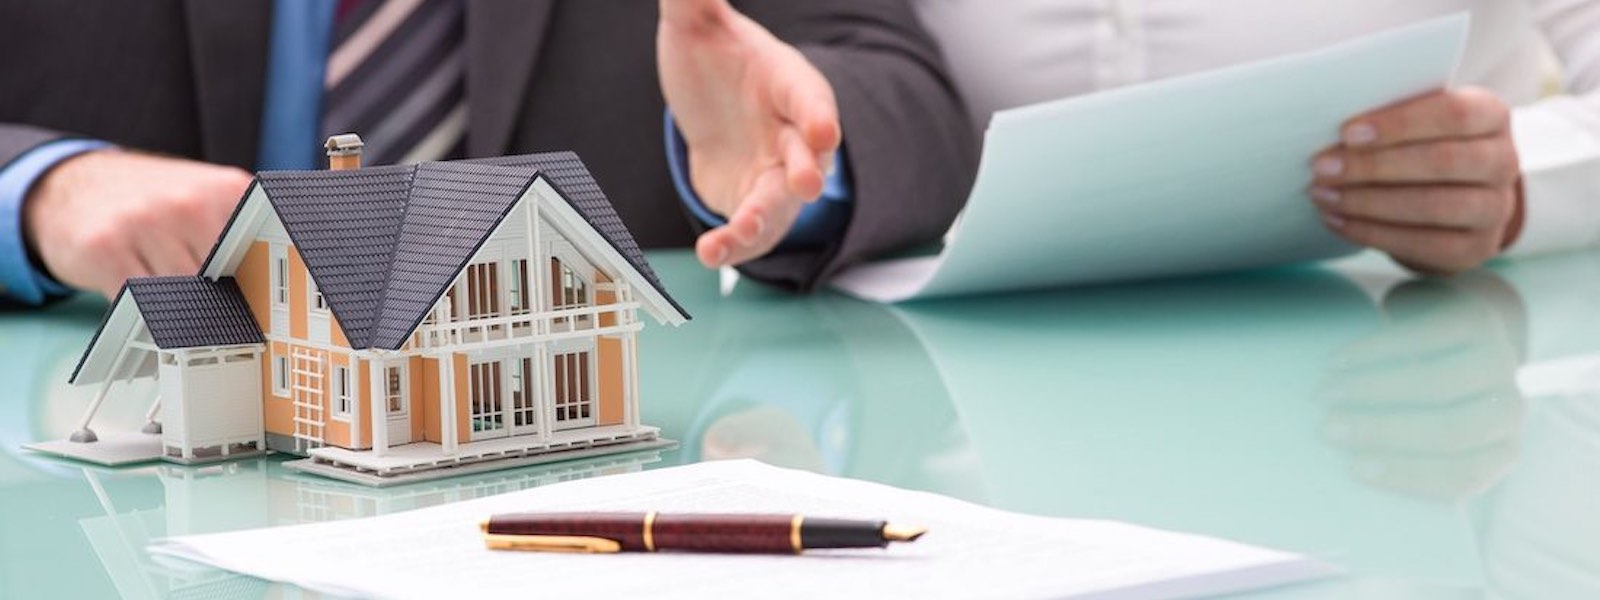 selling your prosper home